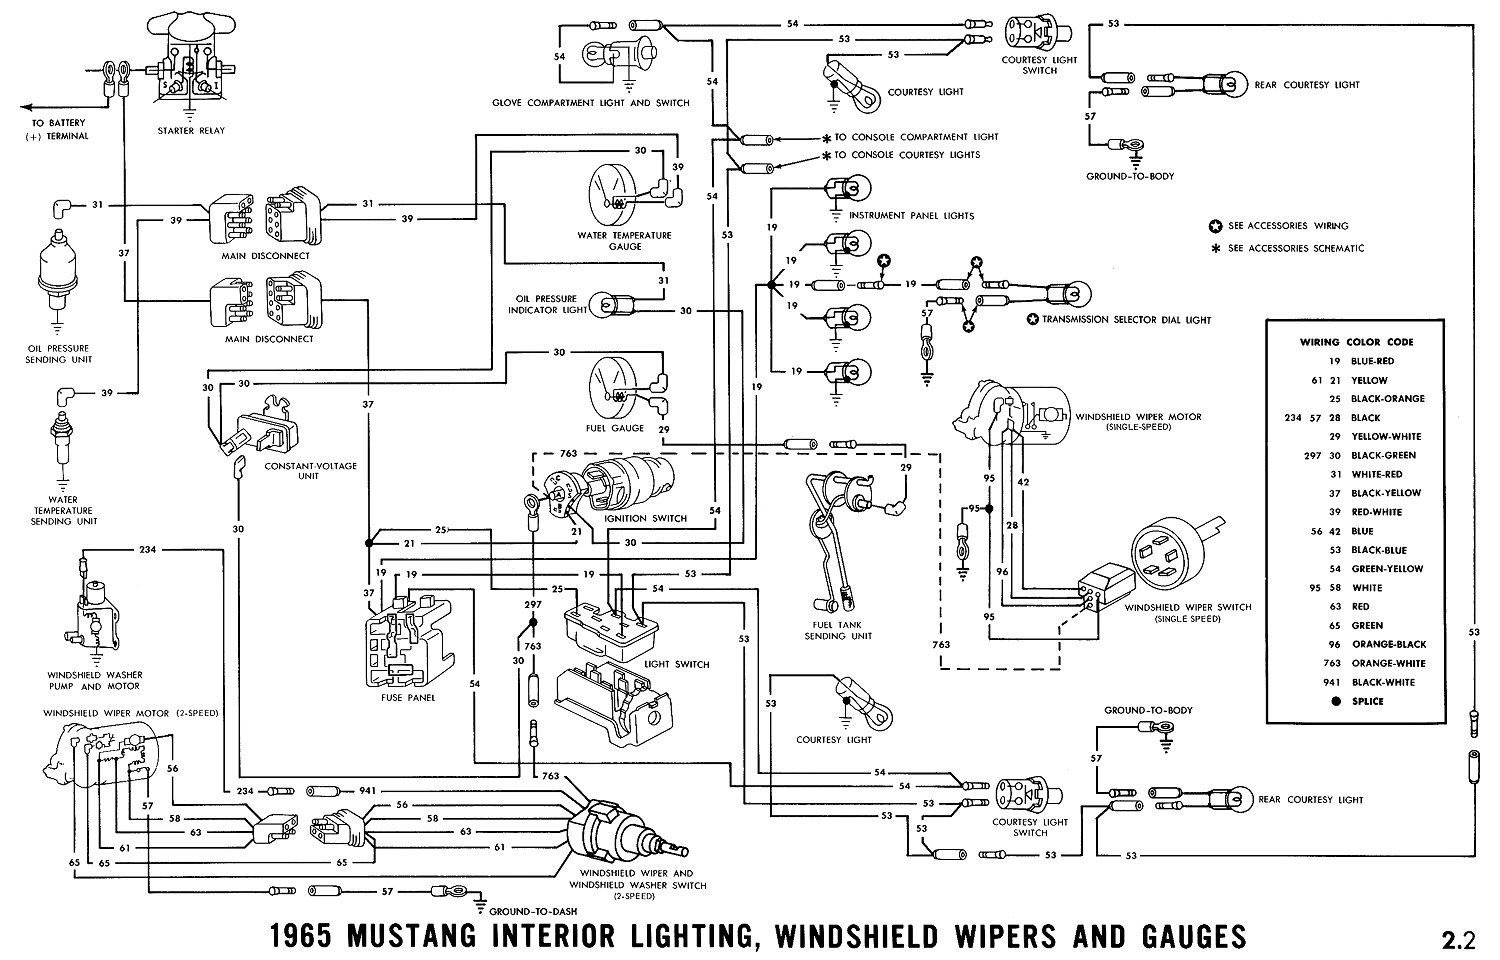 1965g 1965 mustang wiring diagrams average joe restoration 1967 mustang instrument cluster wiring diagram at sewacar.co